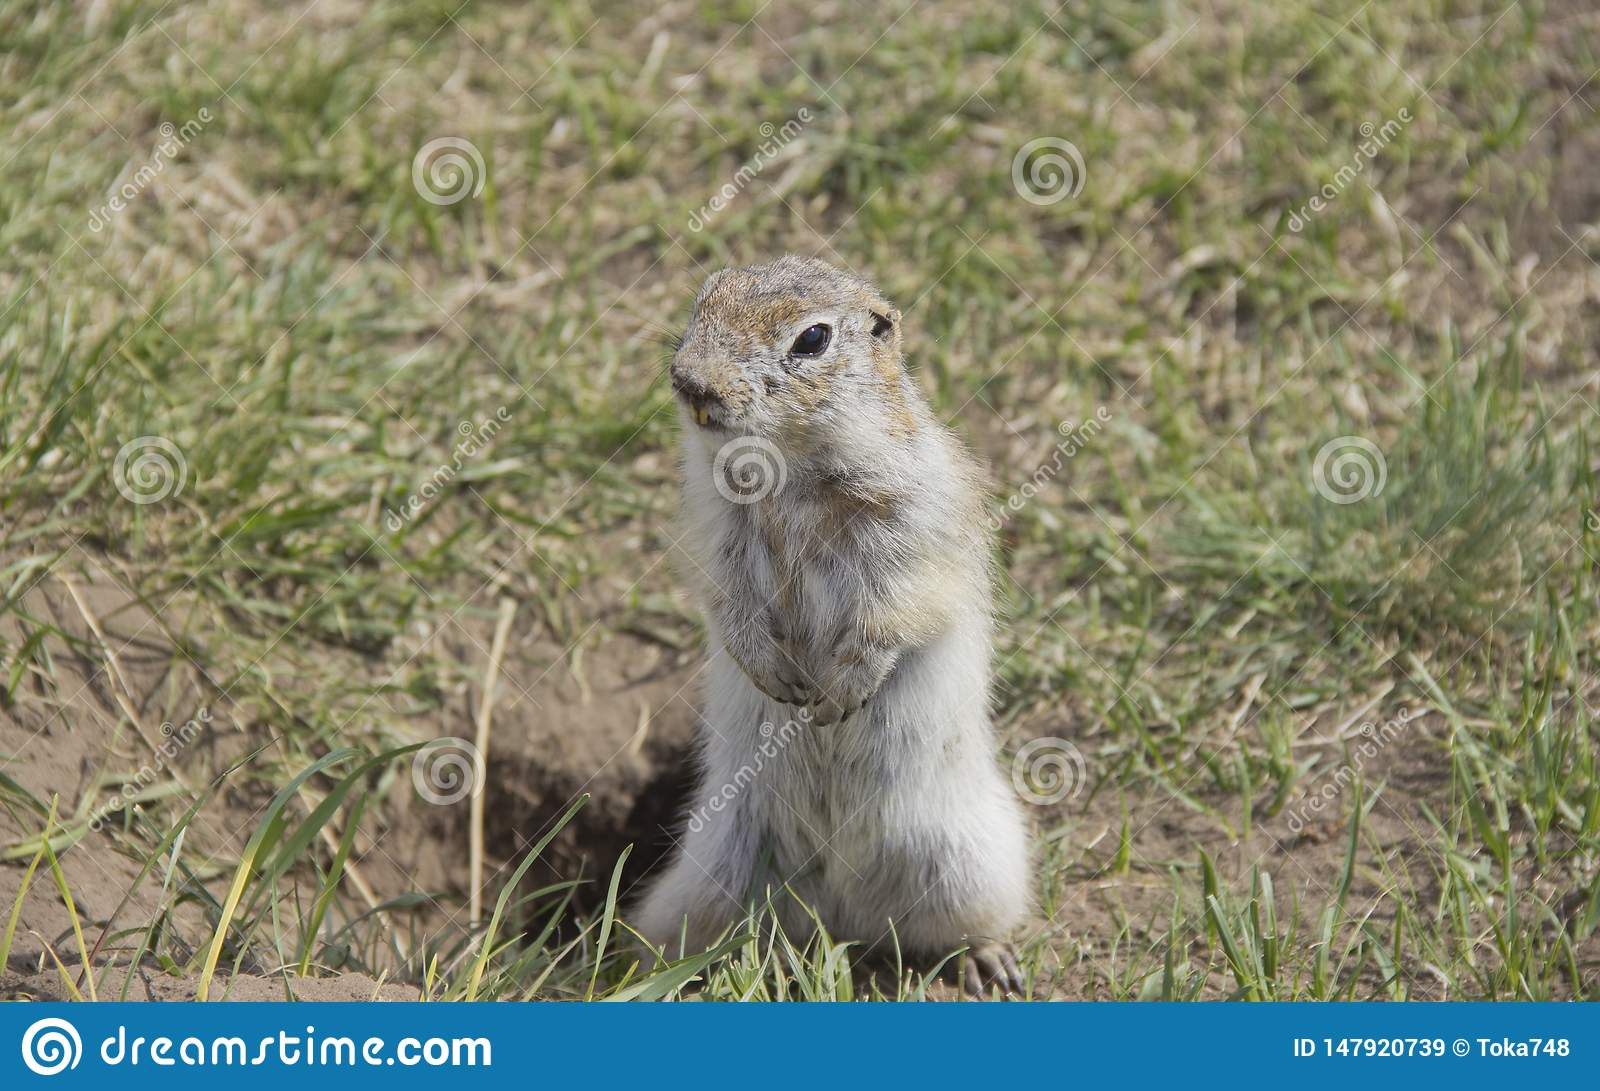 gopher genus rodents of